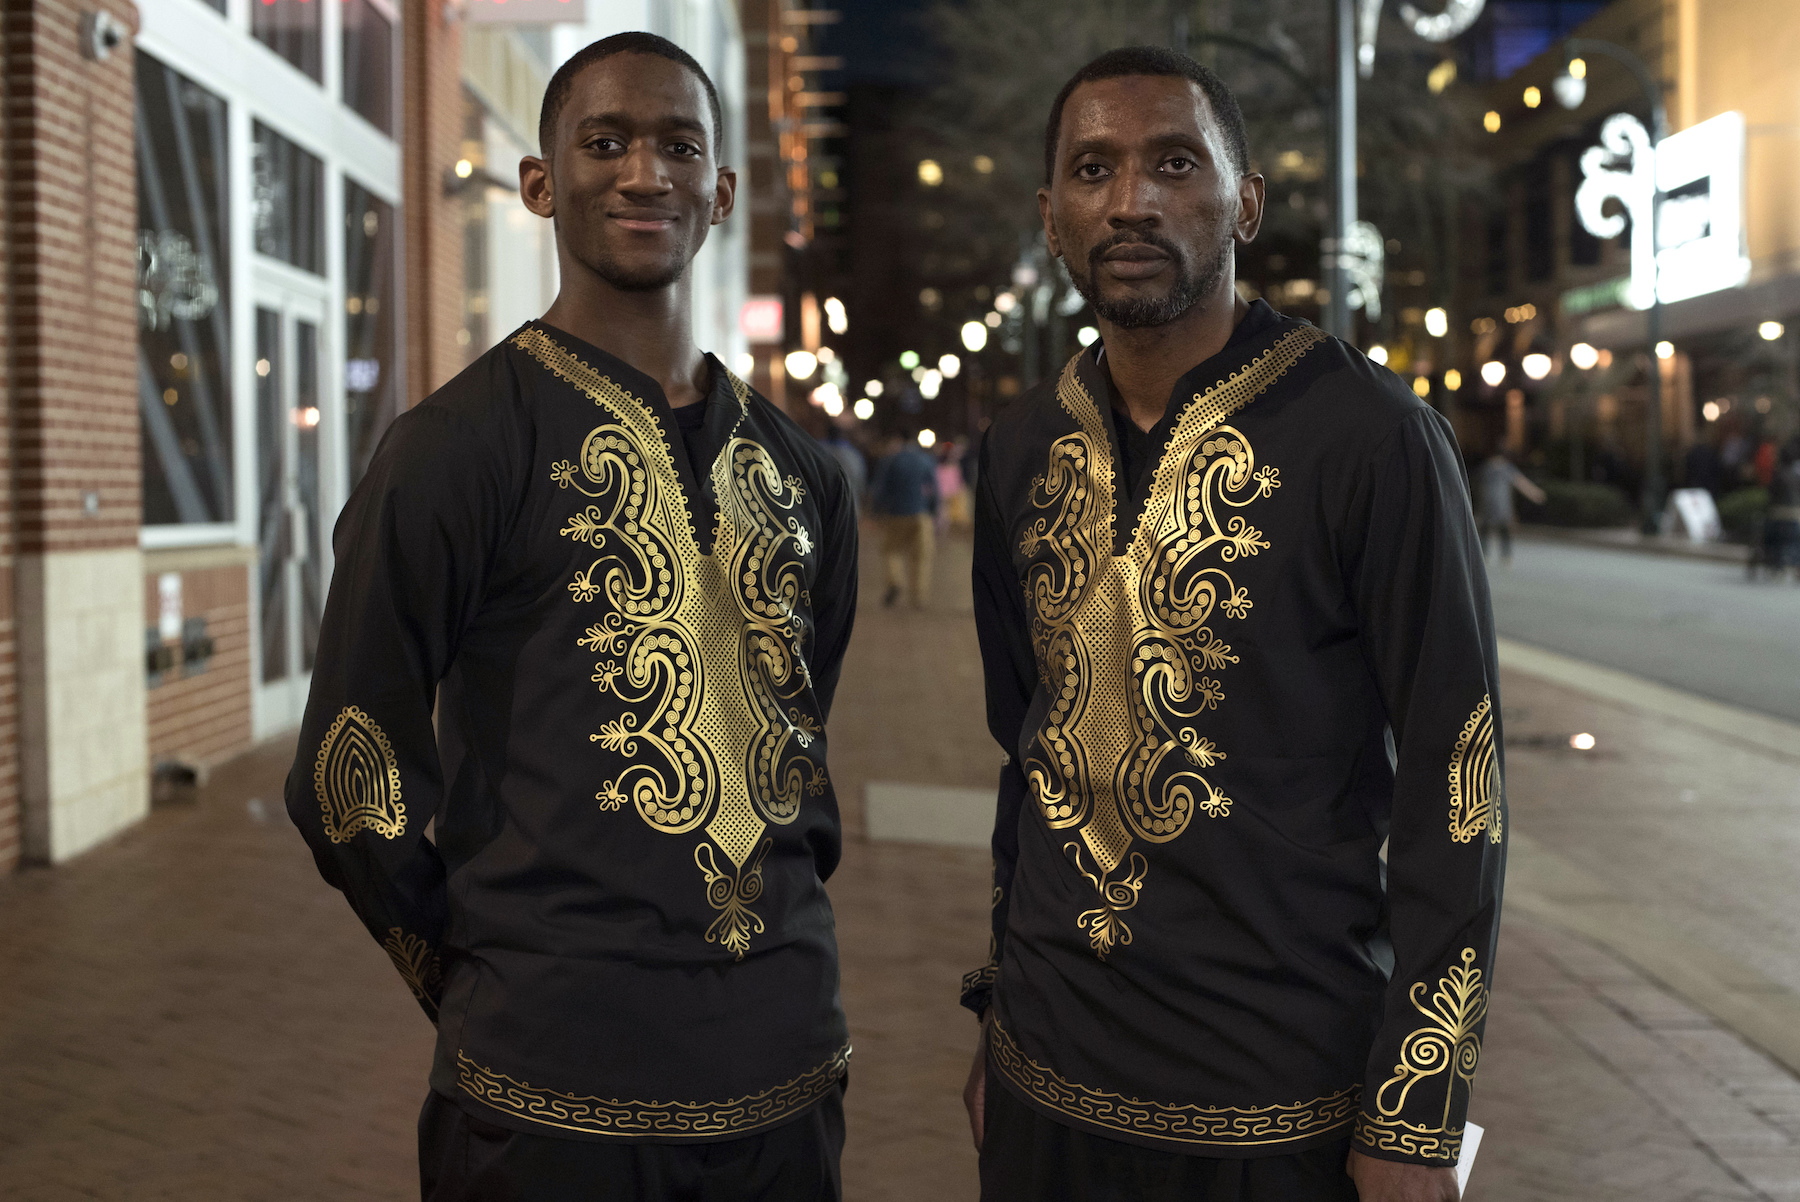 <div class='meta'><div class='origin-logo' data-origin='AP'></div><span class='caption-text' data-credit='AP Photo/Sait Serkan Gurbuz'>Khalel Robinson, left, poses with his father Jossan Robinson before seeing Black Panther in Silver Spring, Md., Thursday, Feb. 15, 2018.</span></div>